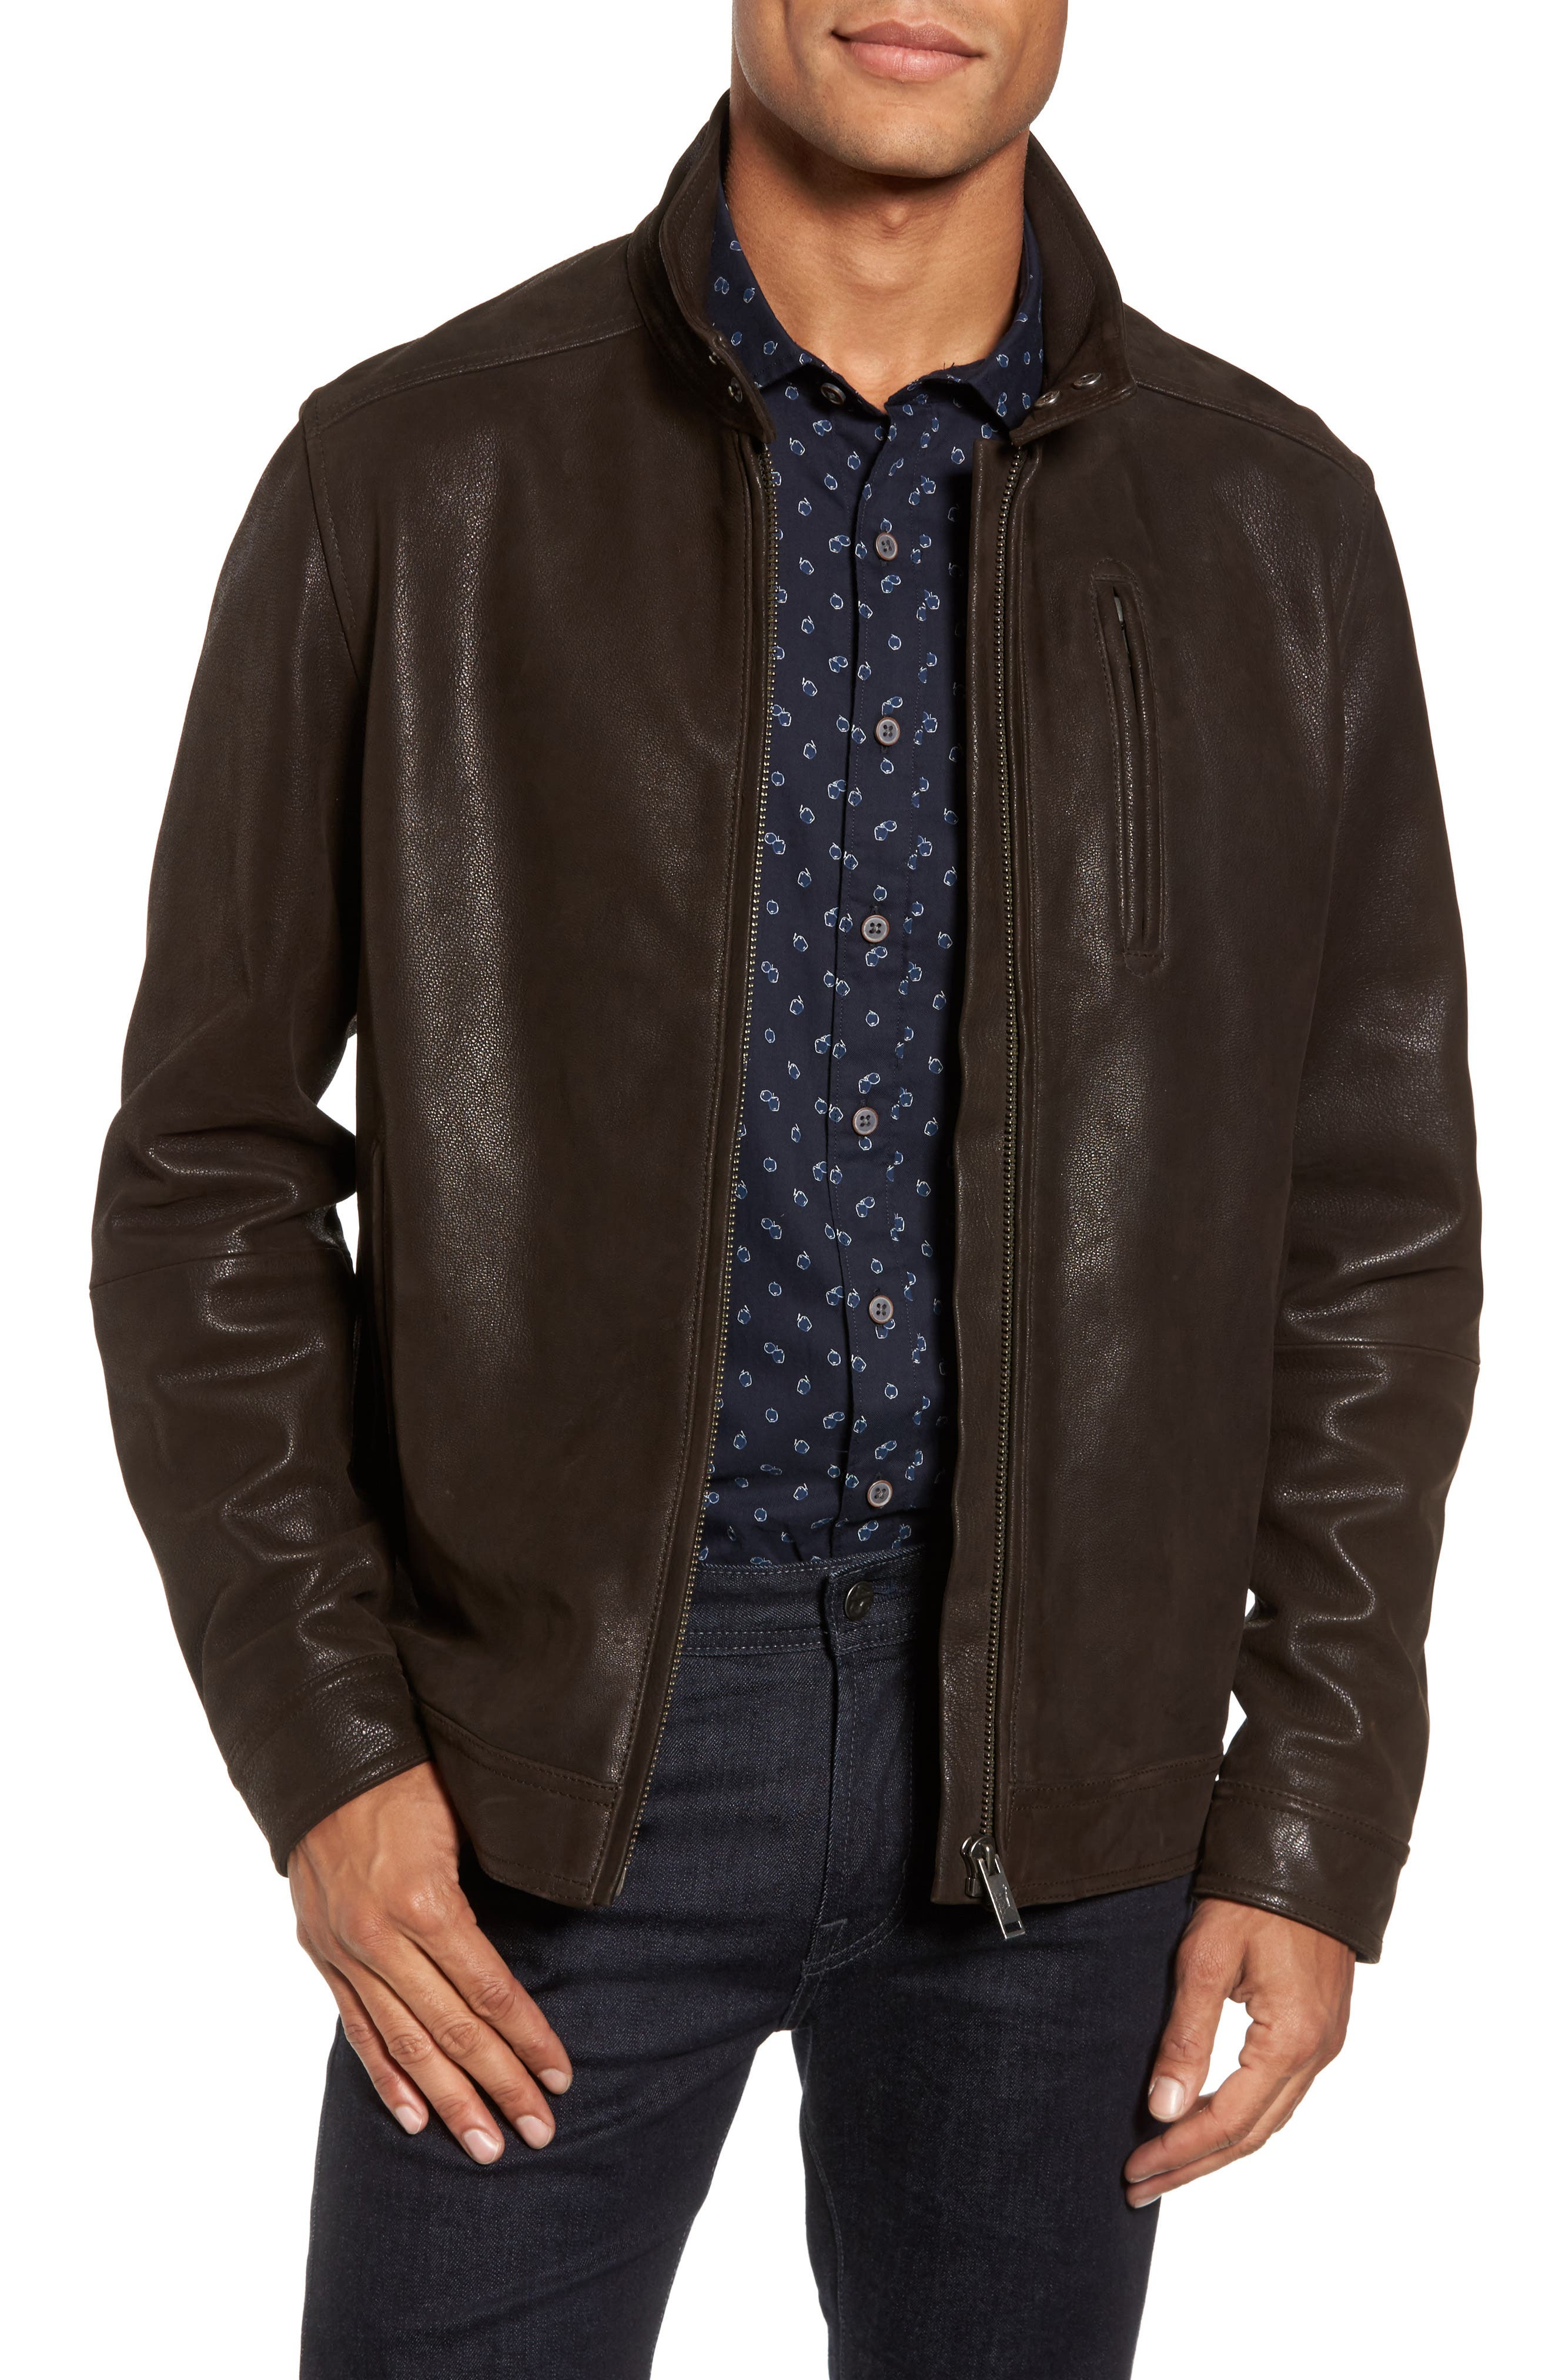 Westhaven Distressed Leather Bomber Jacket,                             Main thumbnail 1, color,                             Chocolate